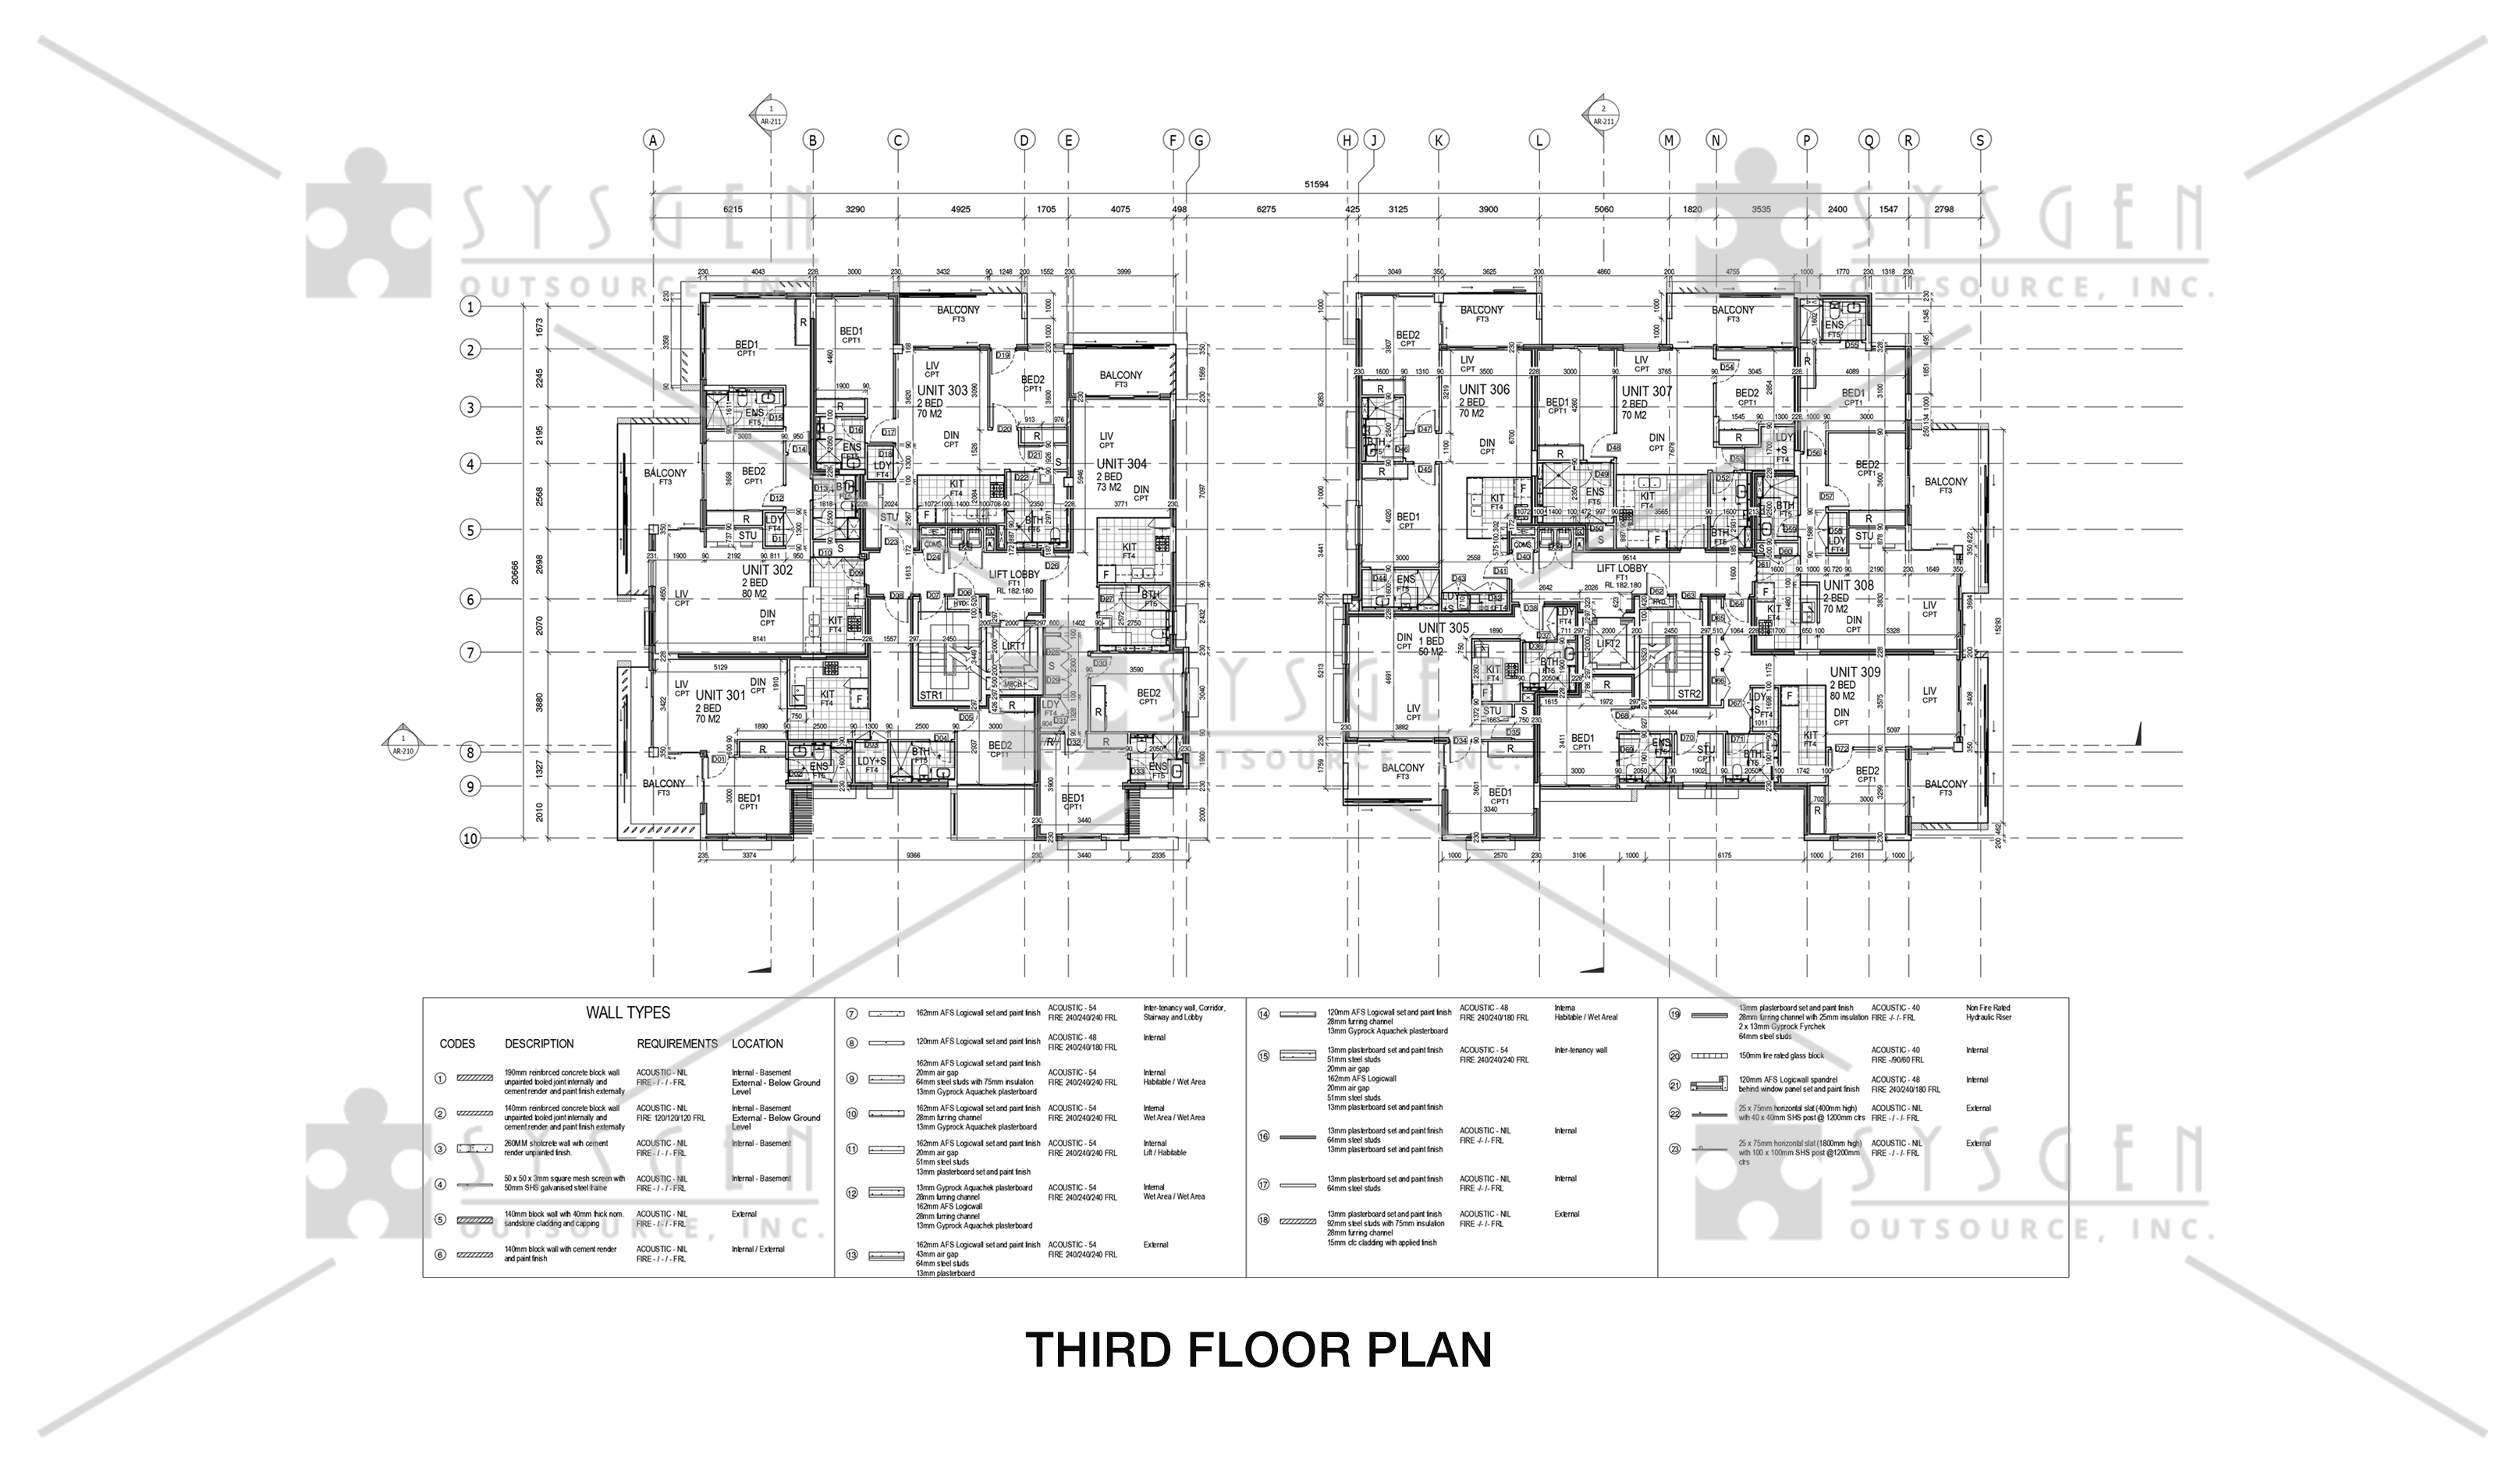 sysgen-outsource-cad-outsourcing-services-cad-conversion-revit-4-storey-residential7